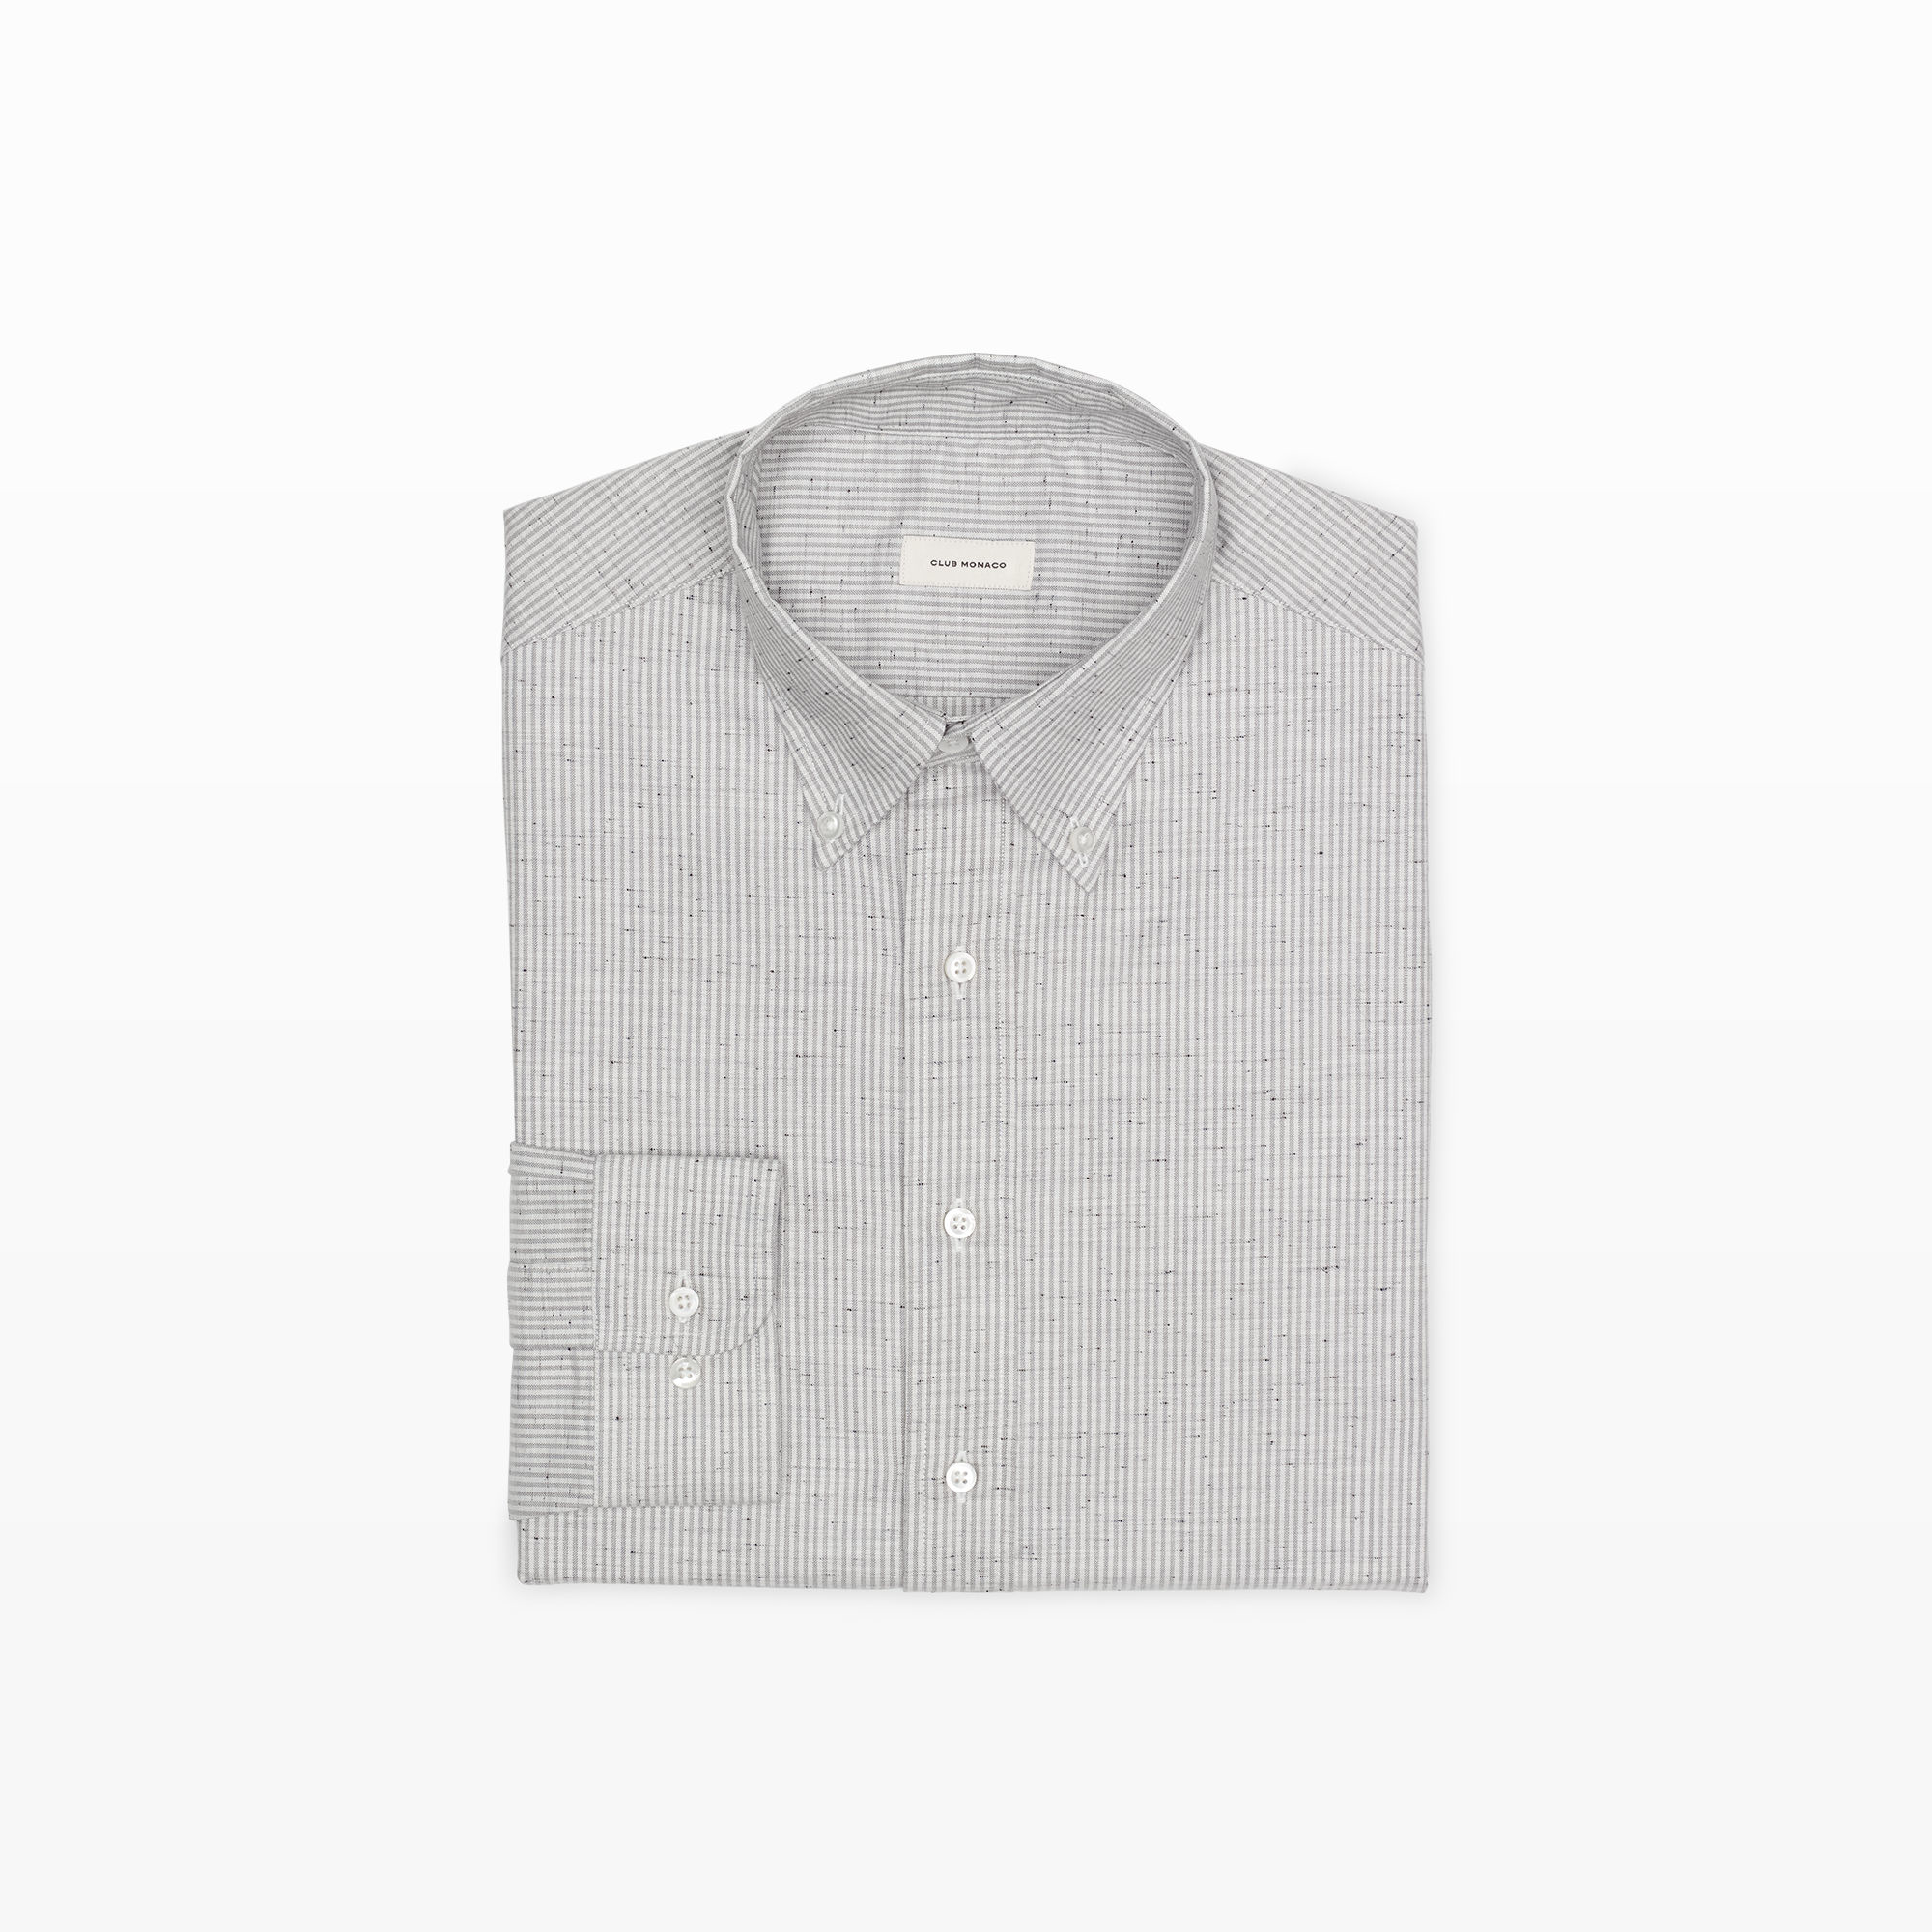 Lyst Club Monaco Made In The Usa Dress Shirt In Gray For Men